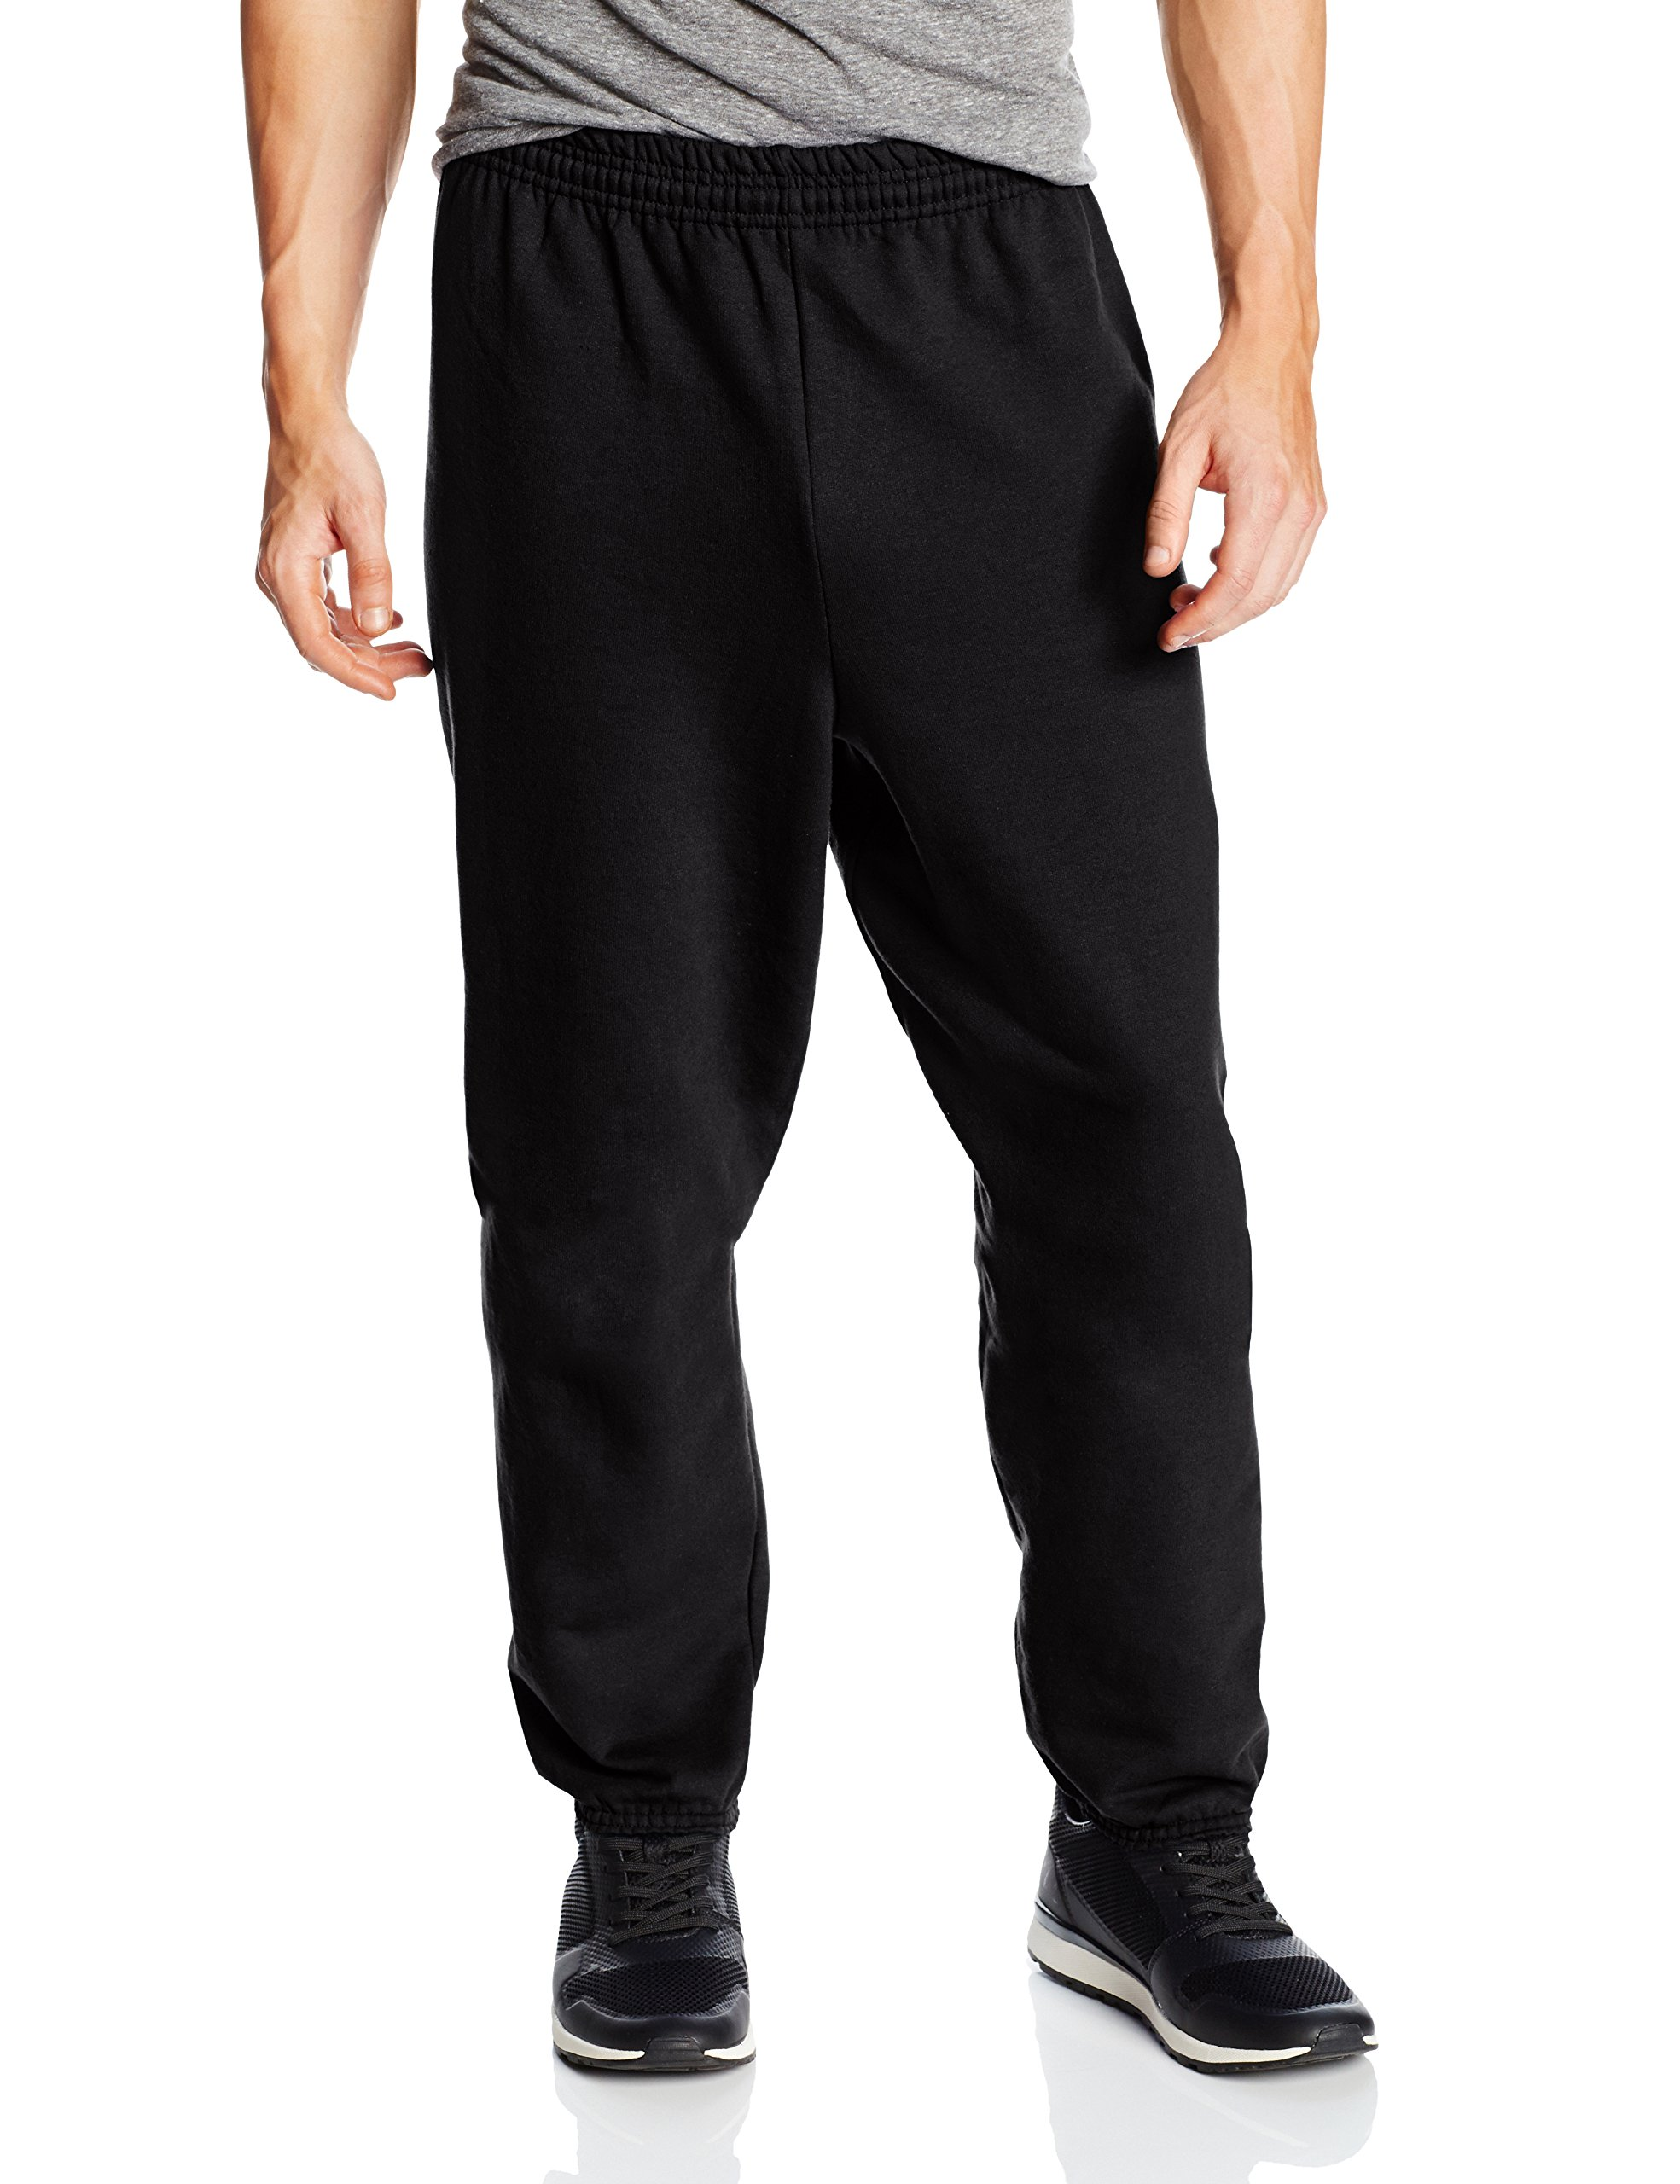 Hanes Men's EcoSmart Fleece Sweatpant, Black, Large (Pack of 2)